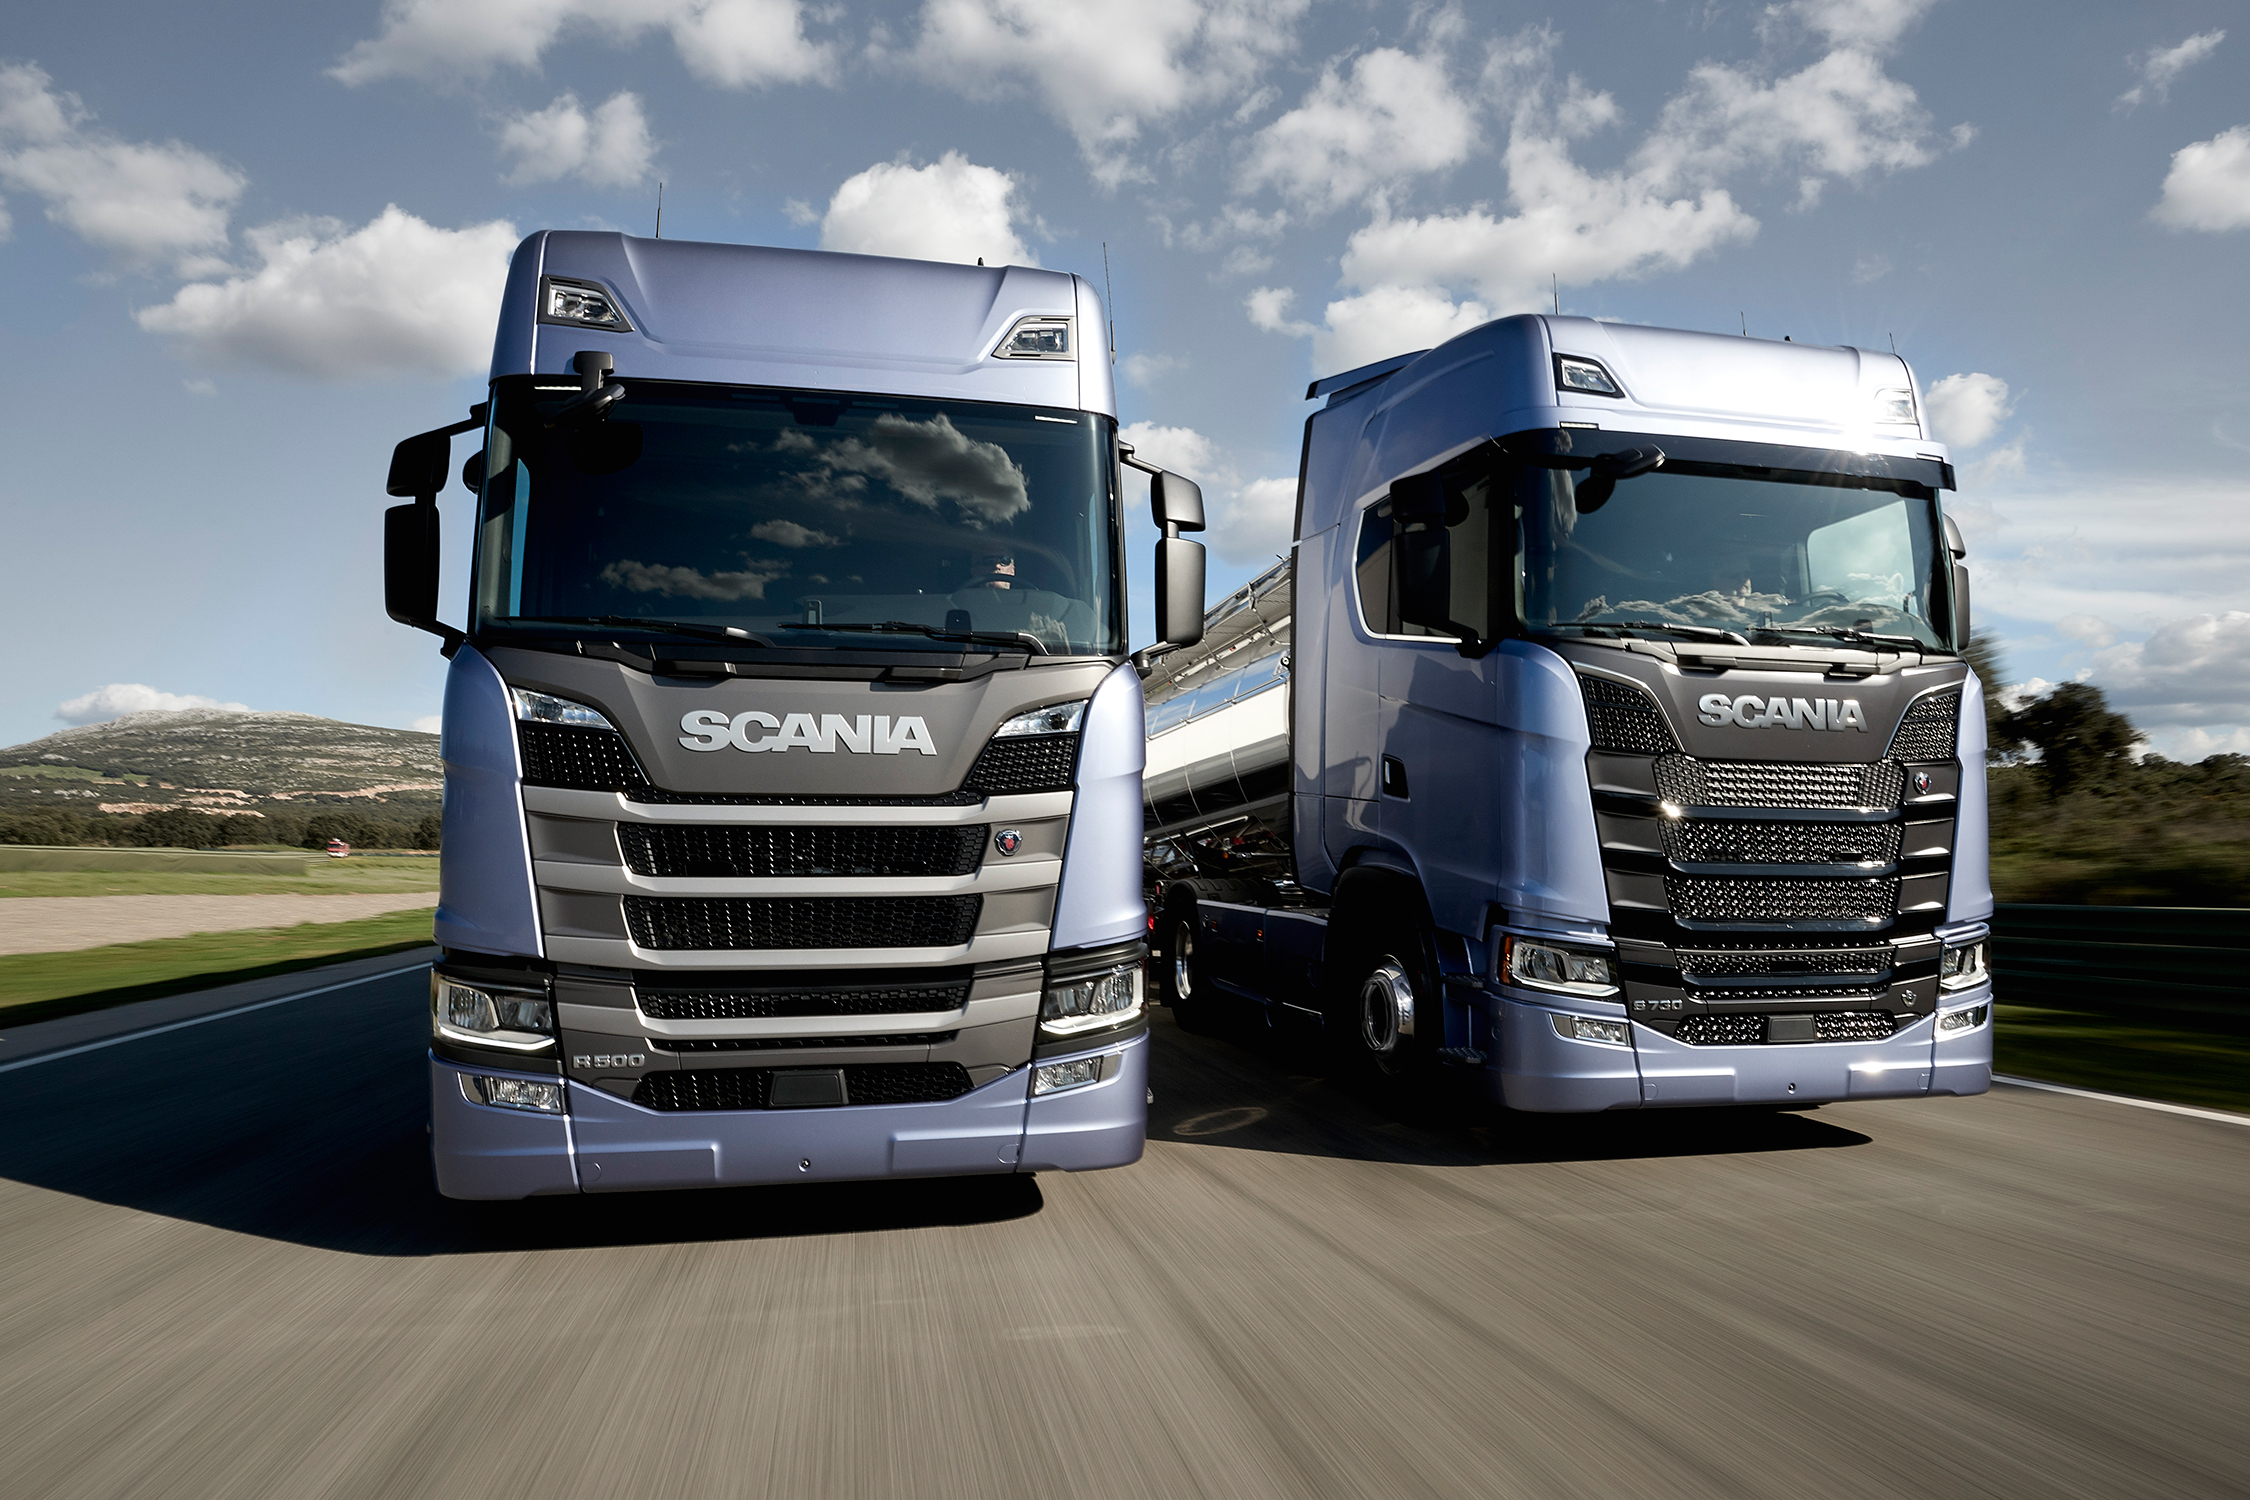 Scania Scania Great Britain